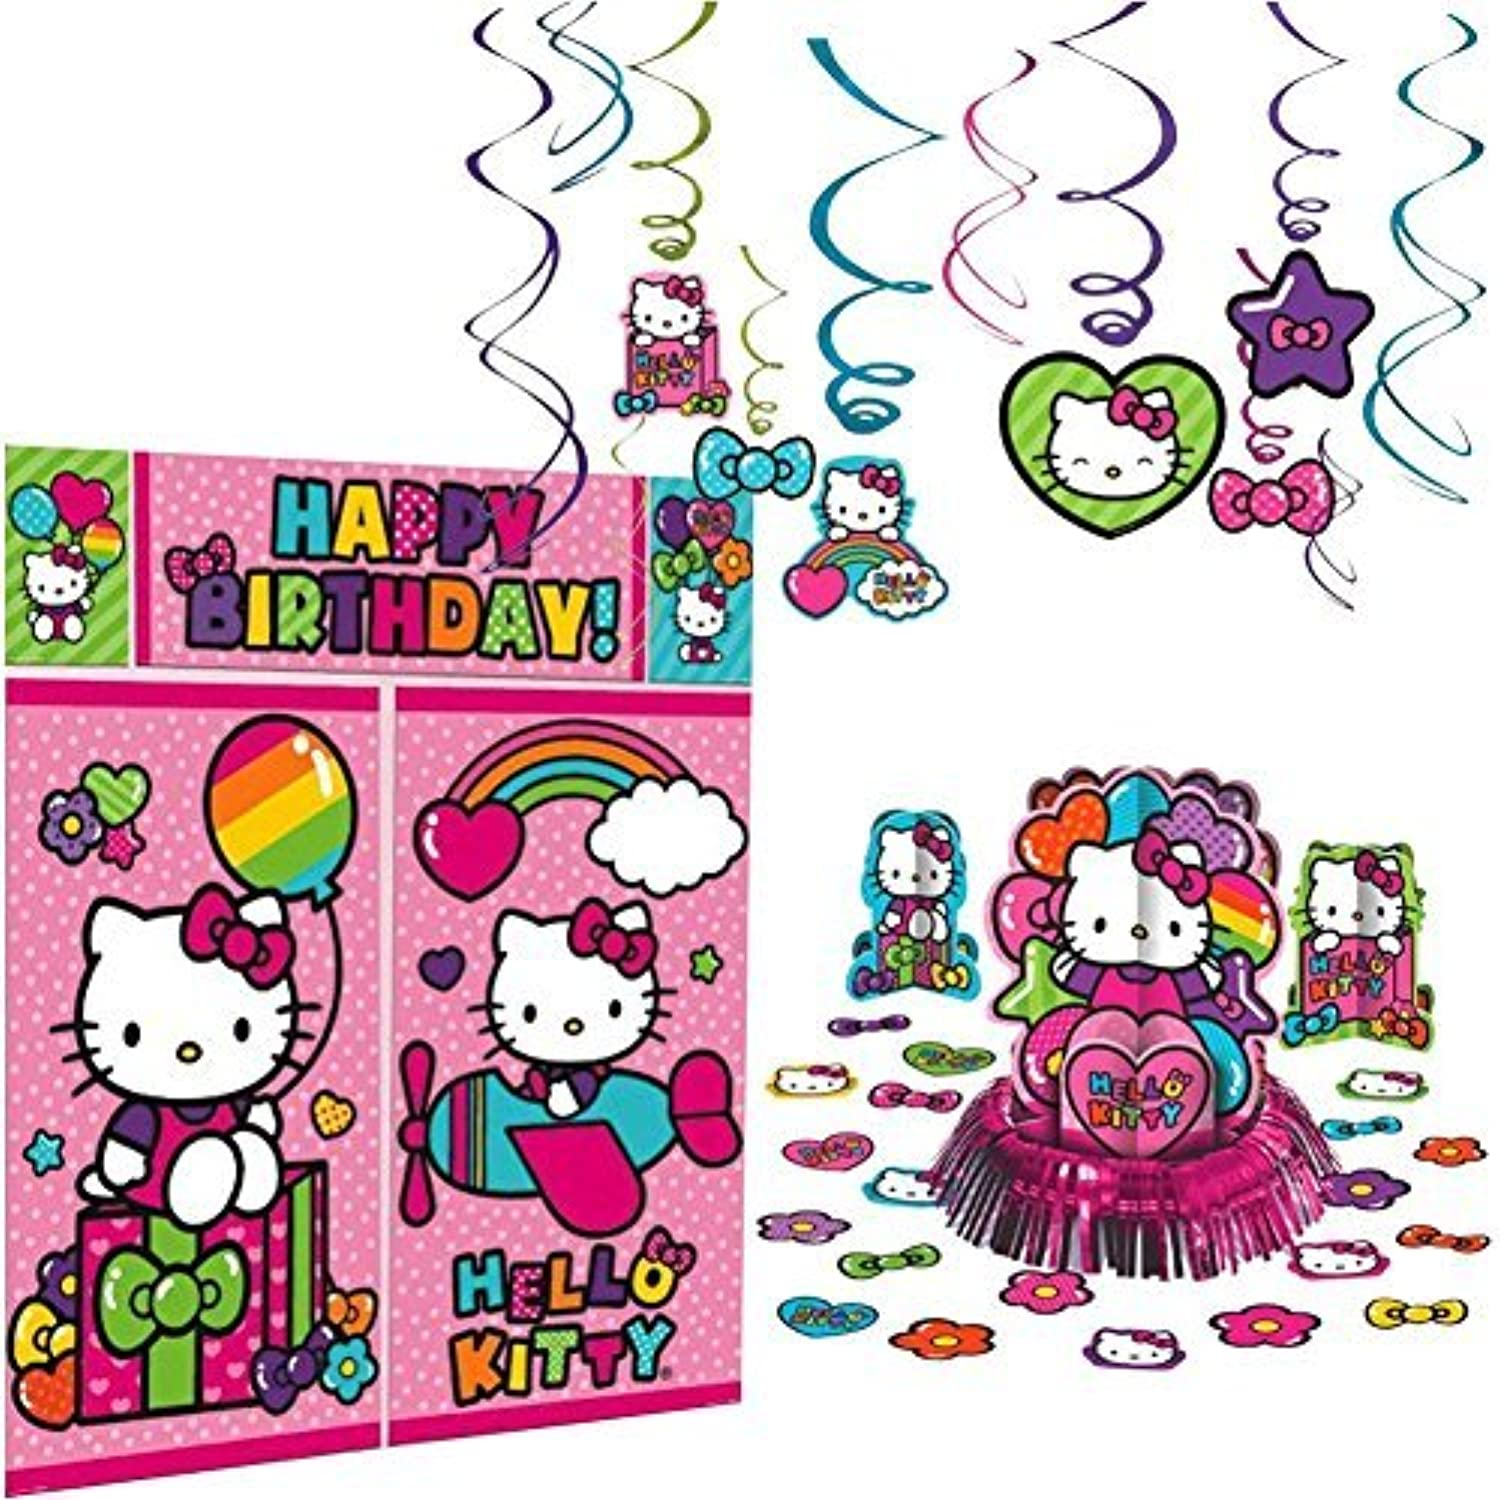 marcas en línea venta barata Hello Kitty Rainbow Decoration Pack Pack Pack - Hanging Swirls, Scene Setter, and Table Decorating Kit by Cedar Crate Market  descuento